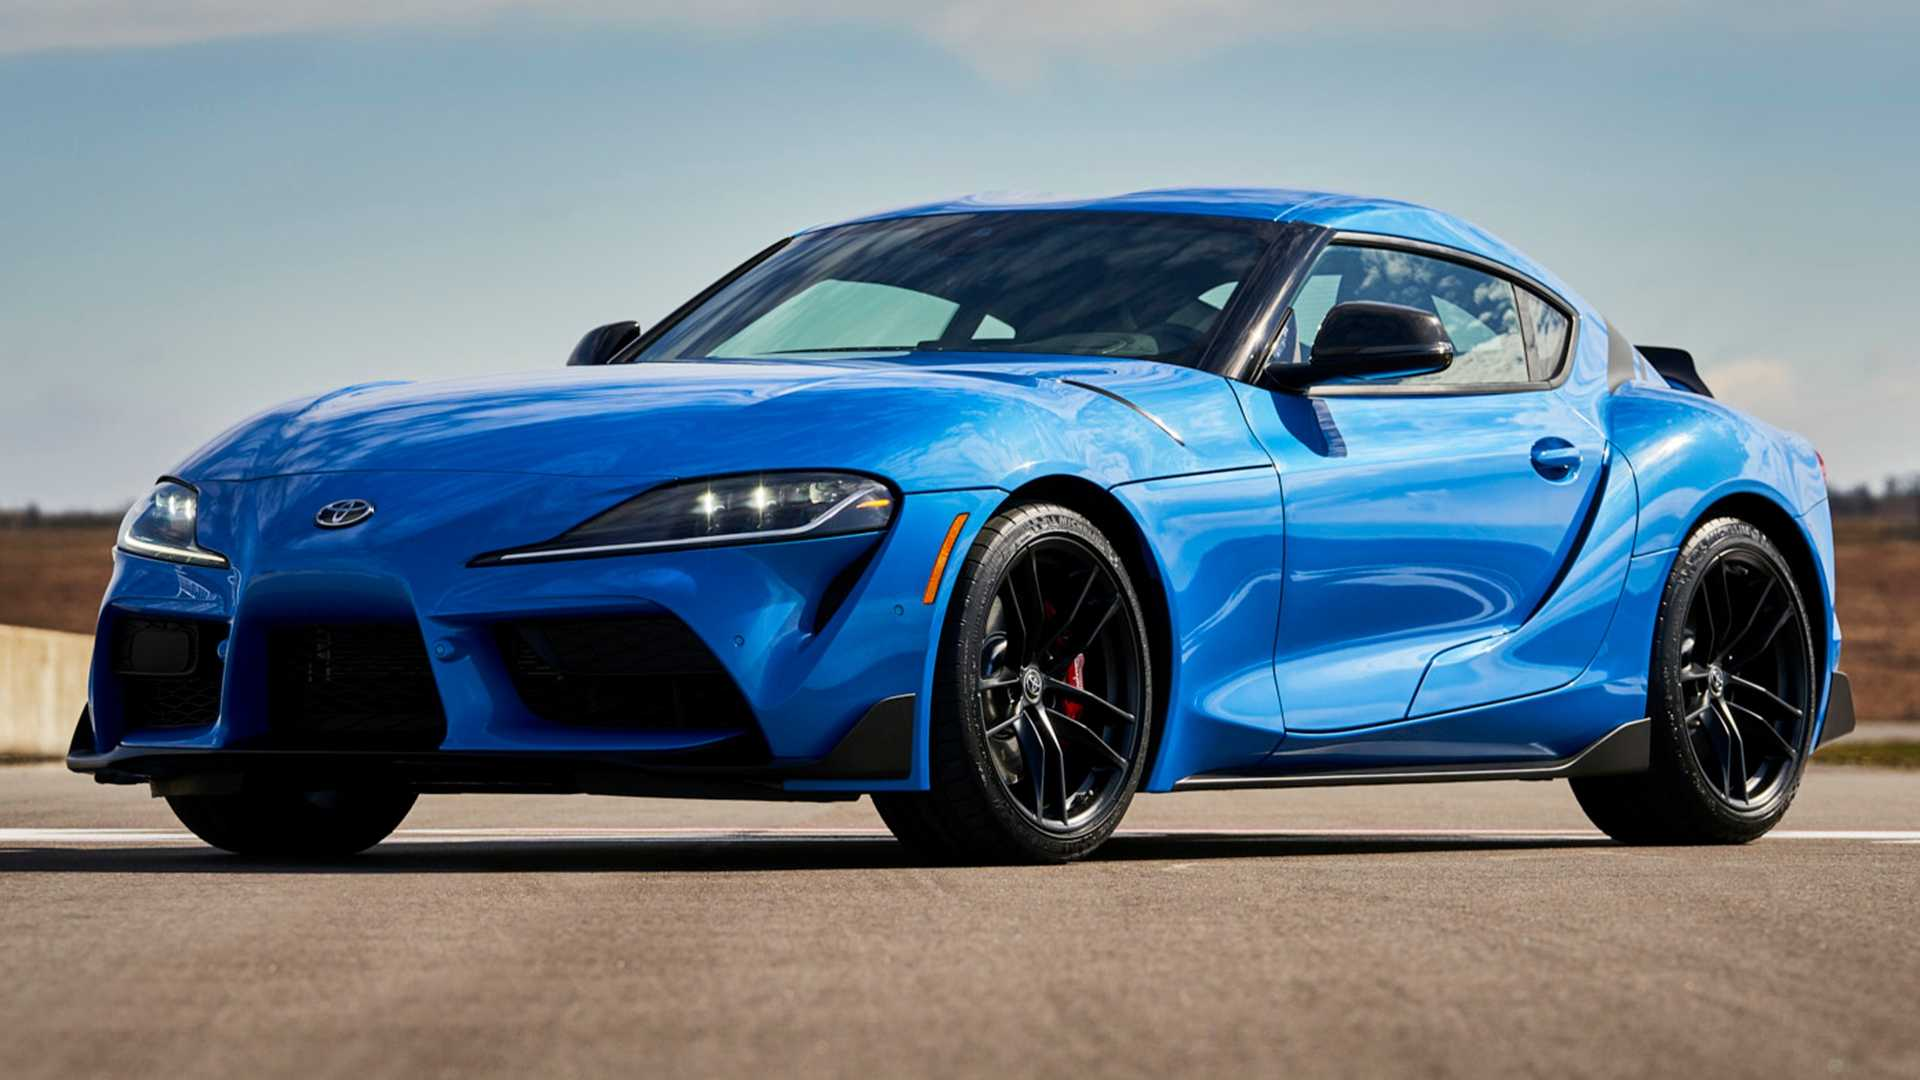 It has barely been a year since Toyota showed us the fifth generation of the Supra at the Detroit Motor Show, and the sales have begun even later than that. Still, the 2021 Supra is already underway.